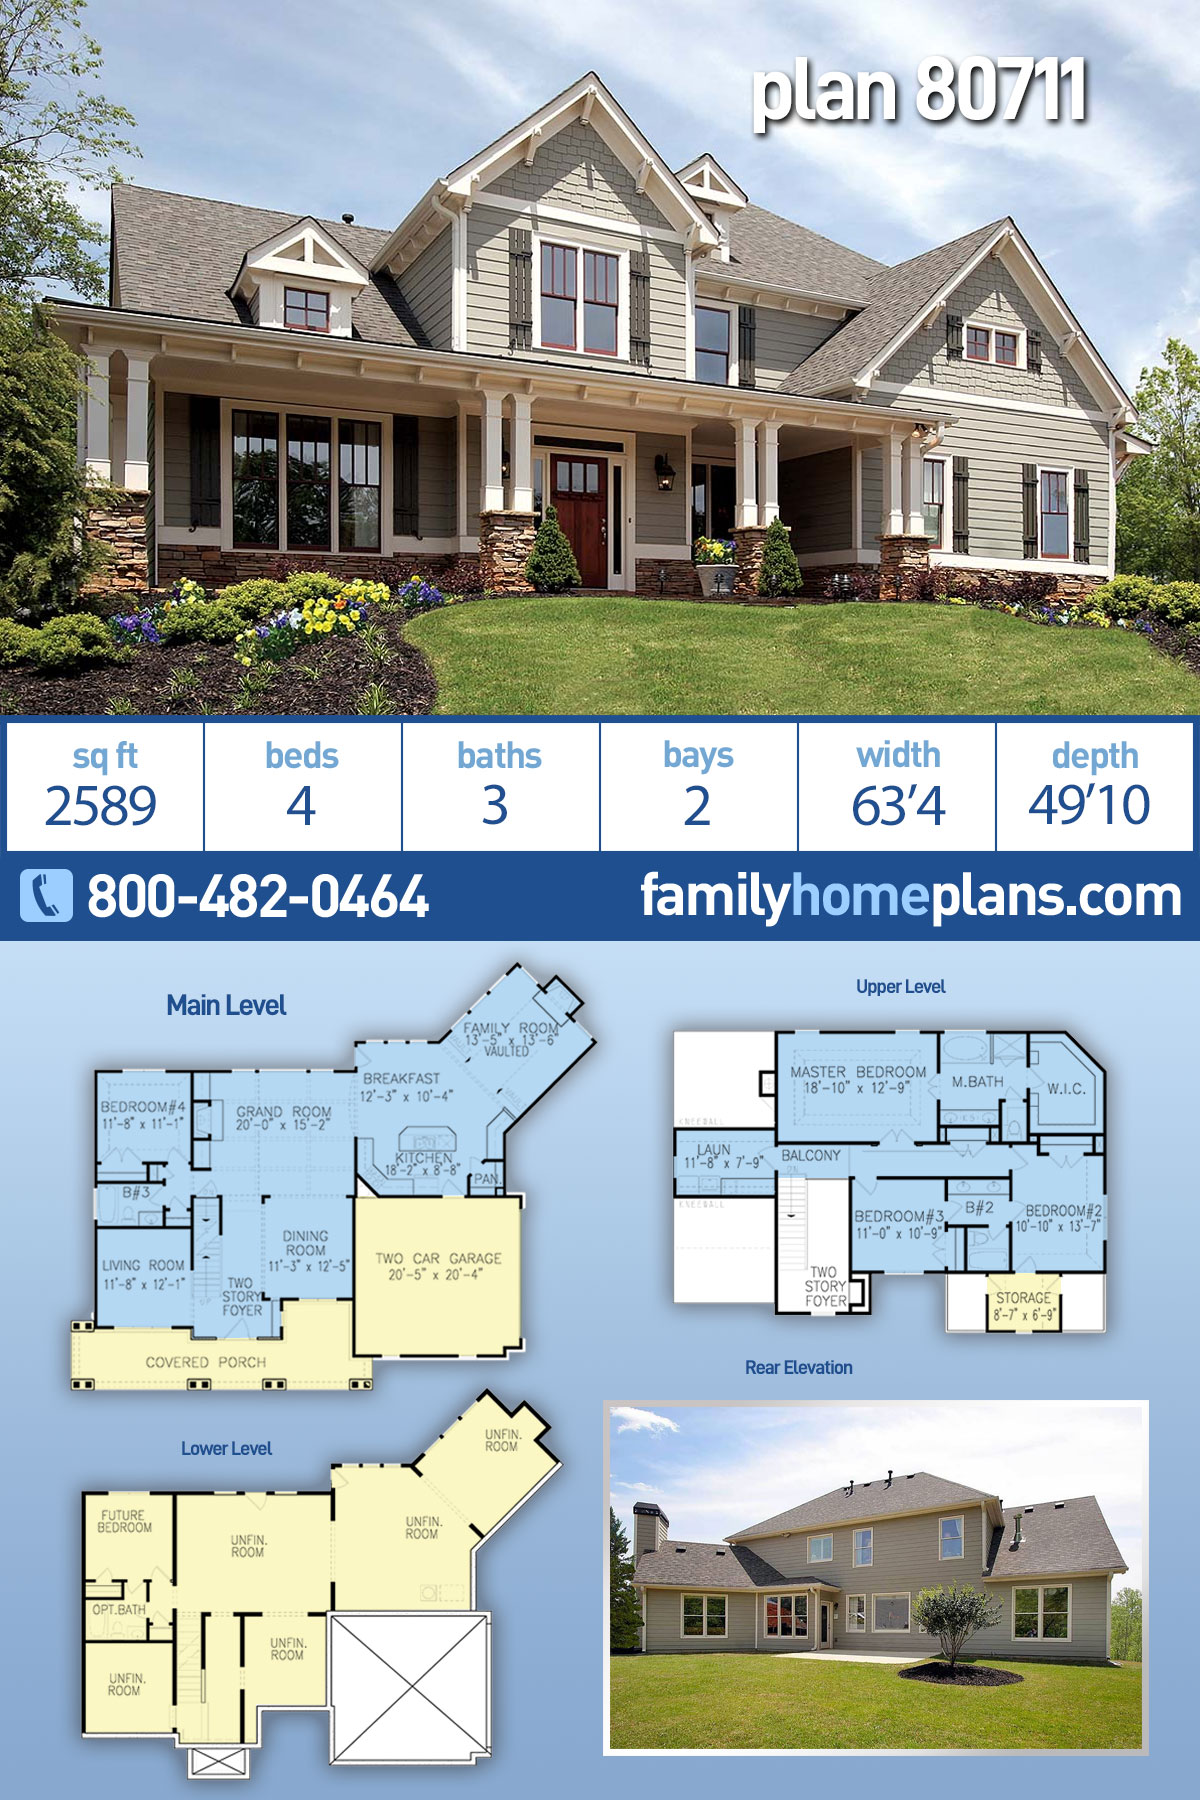 Country, Farmhouse, Southern, Traditional House Plan 80711 with 4 Beds, 3 Baths, 2 Car Garage